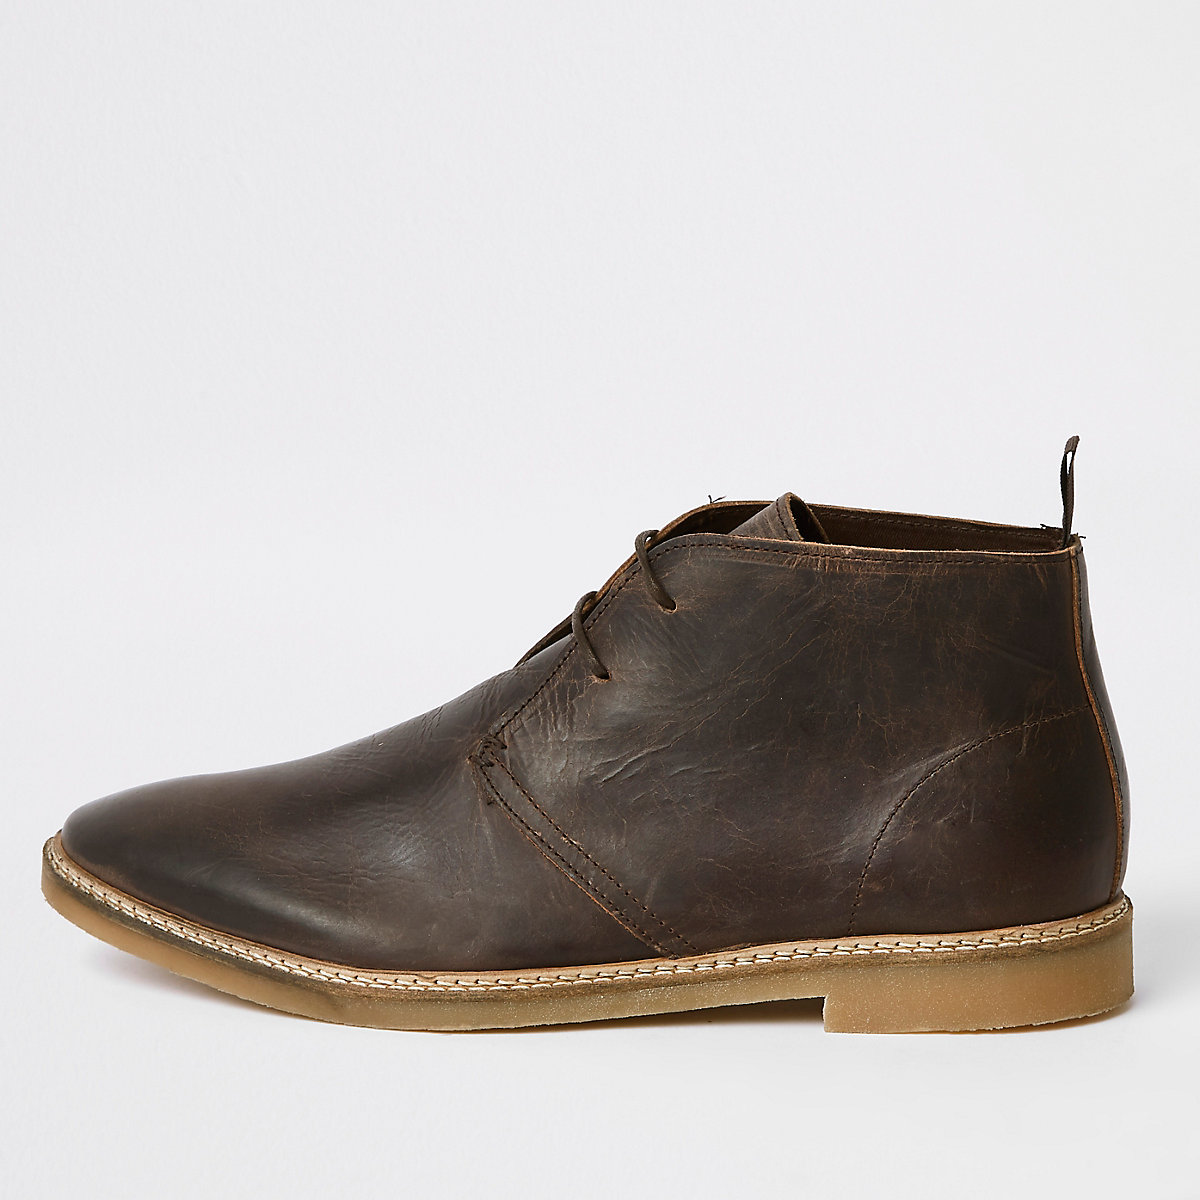 Dark brown leather eyelet desert boots